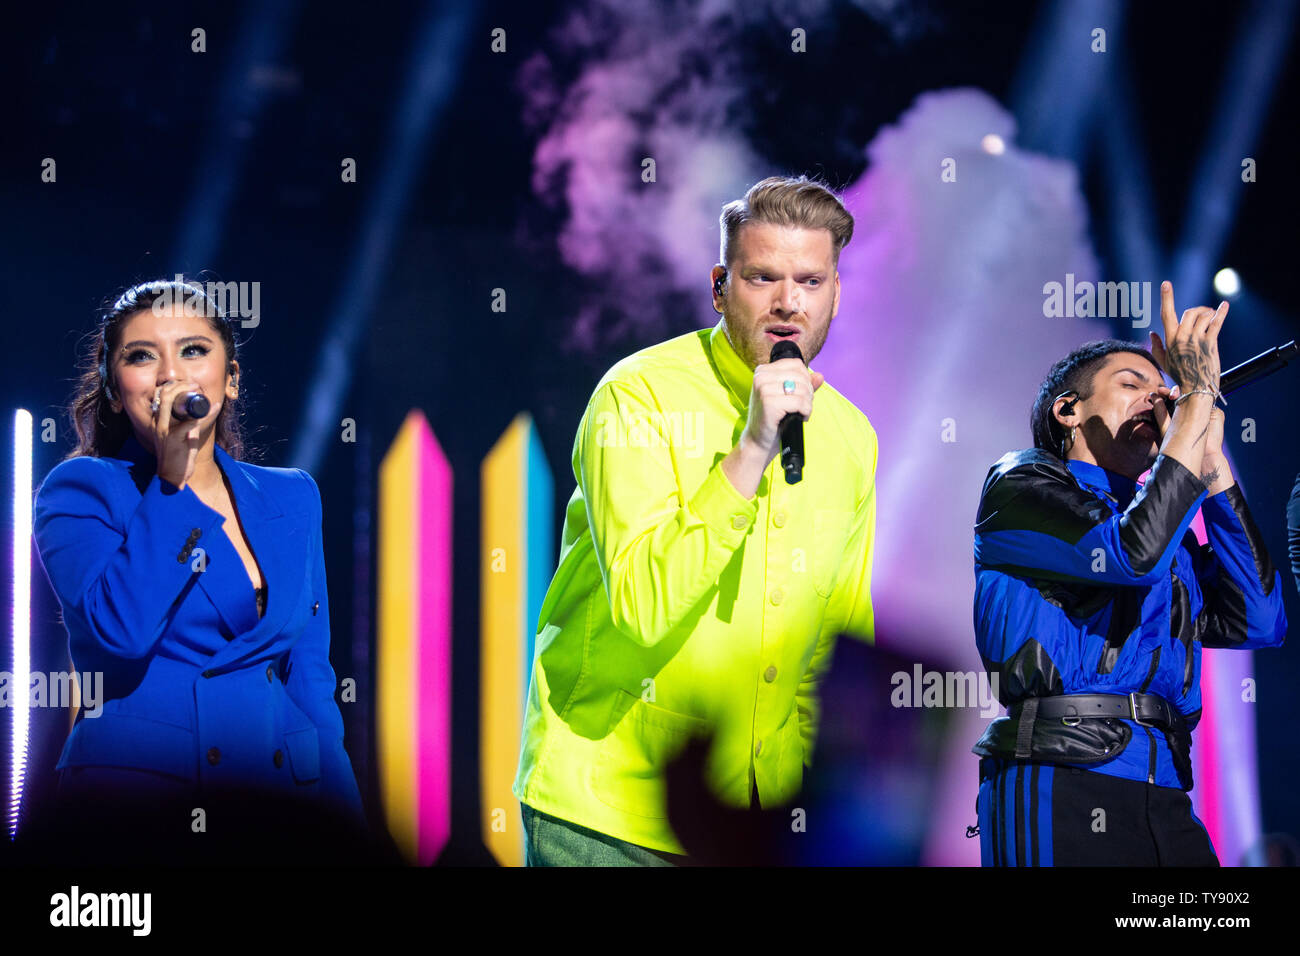 Pentatonix Where Stock Photos & Pentatonix Where Stock